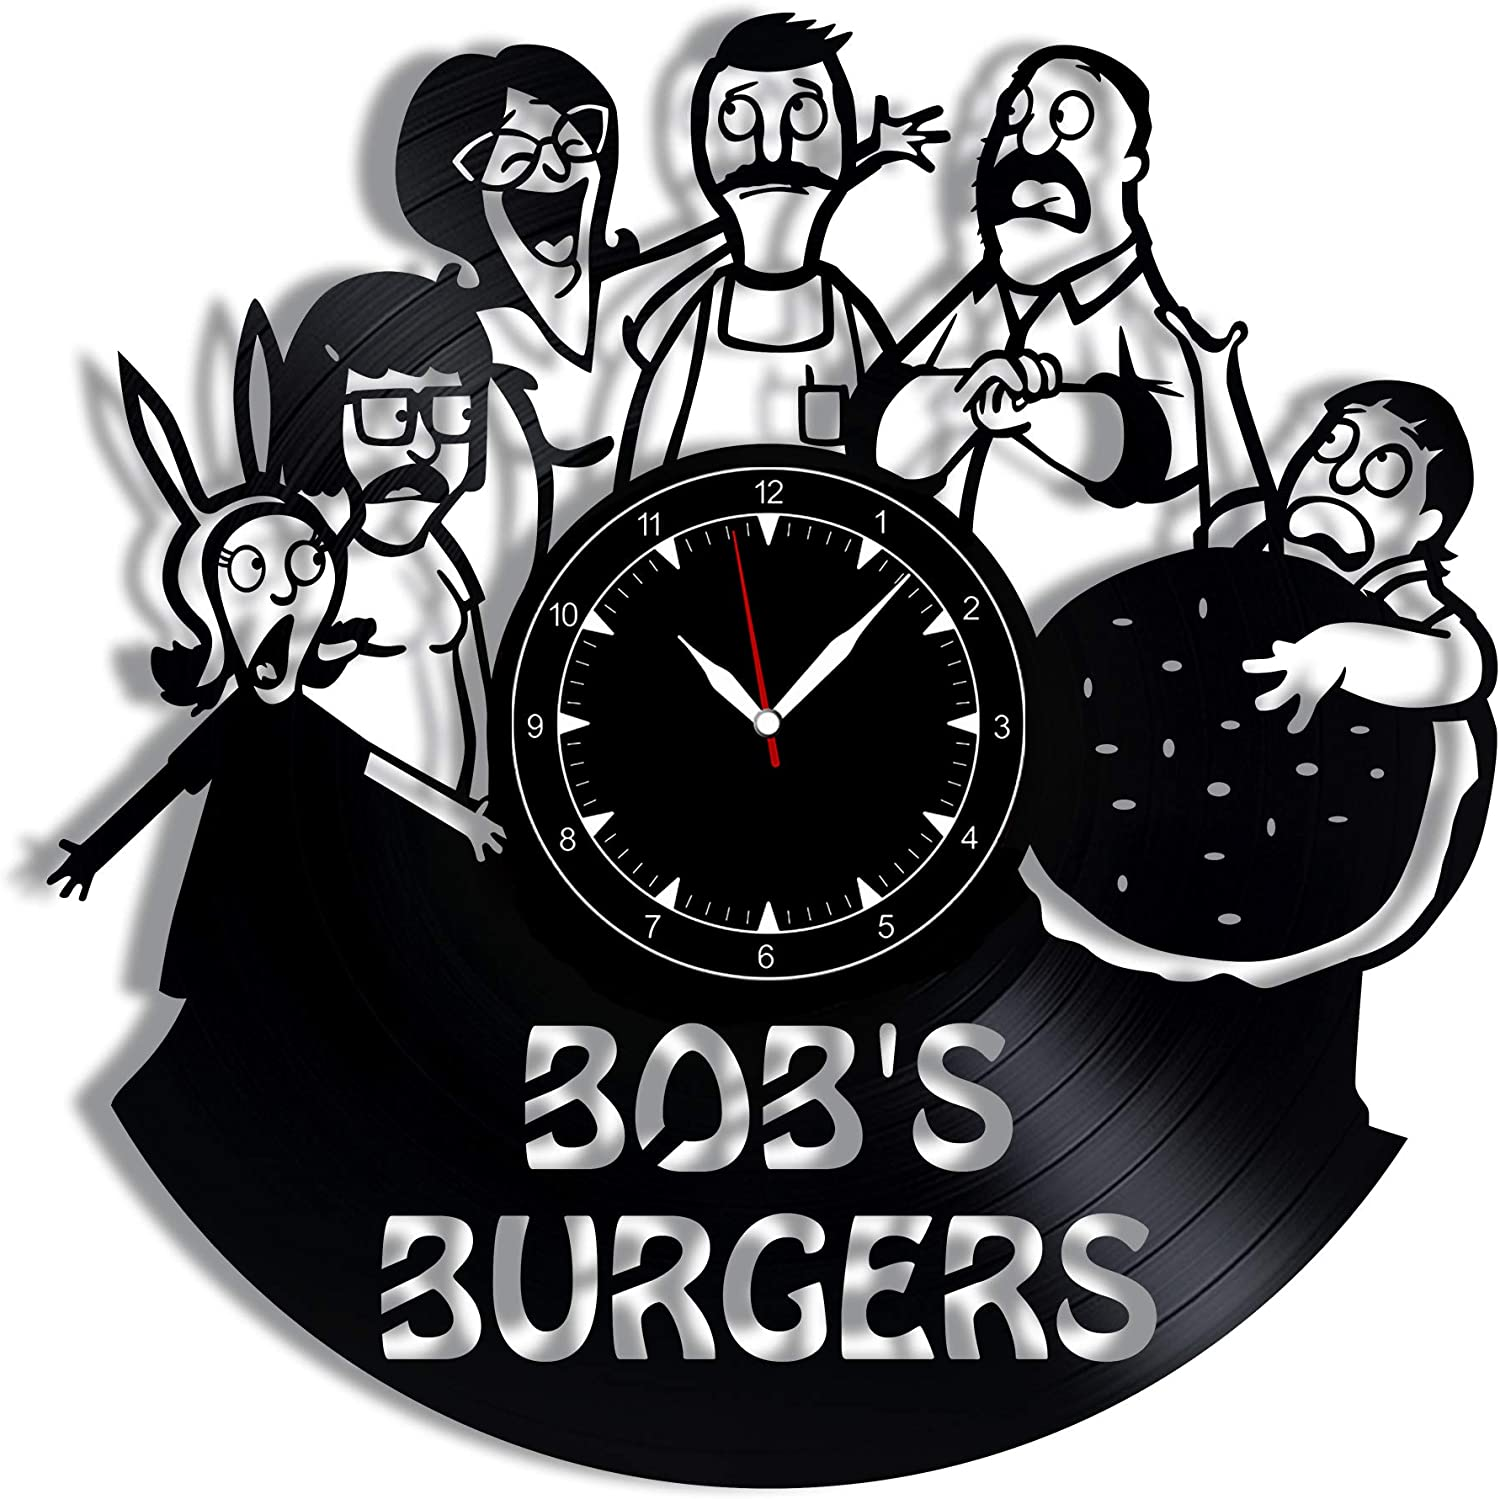 "Bob's Burgers Vinyl Record Clock 12"" - Wall Clock Bob's Burgers - Best Gift for Bobs Burgers Lovers - Original Wall Home Decoration"